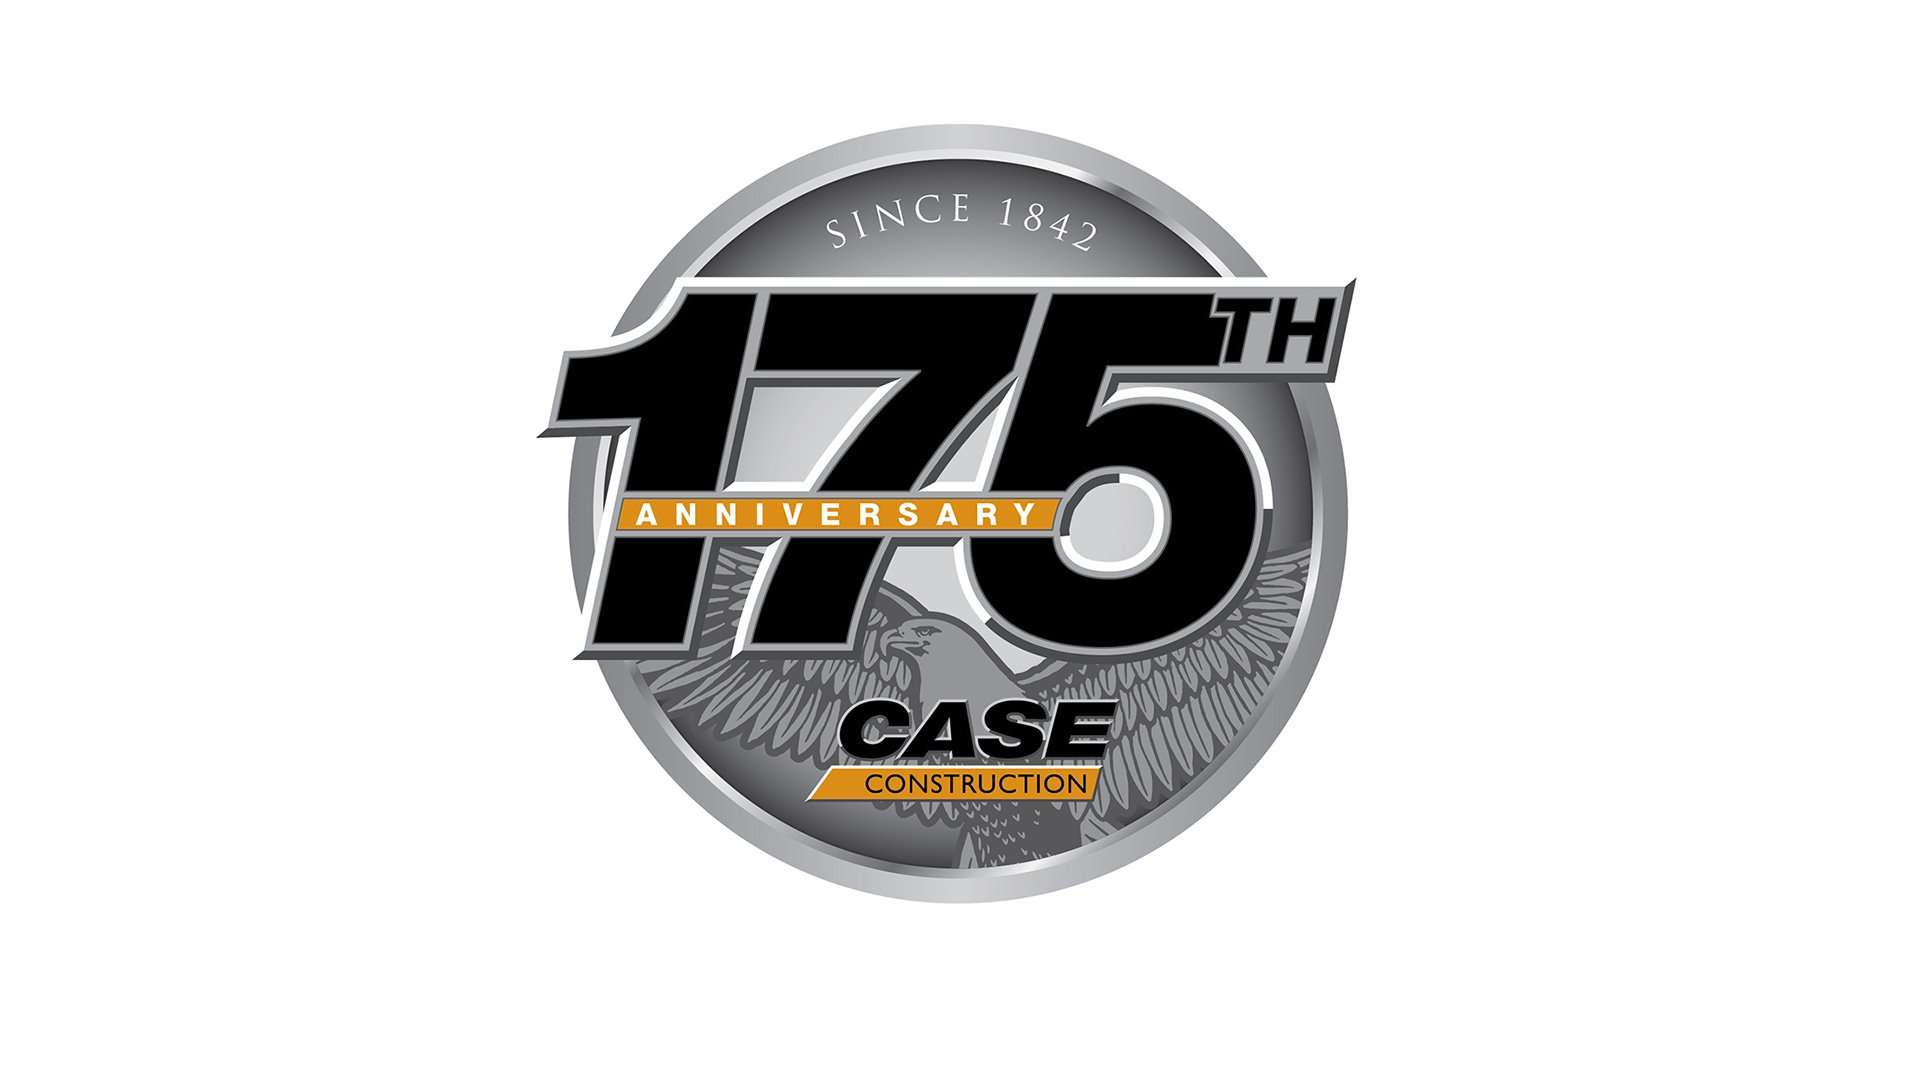 case celebrates 175 years of serving construction business 01